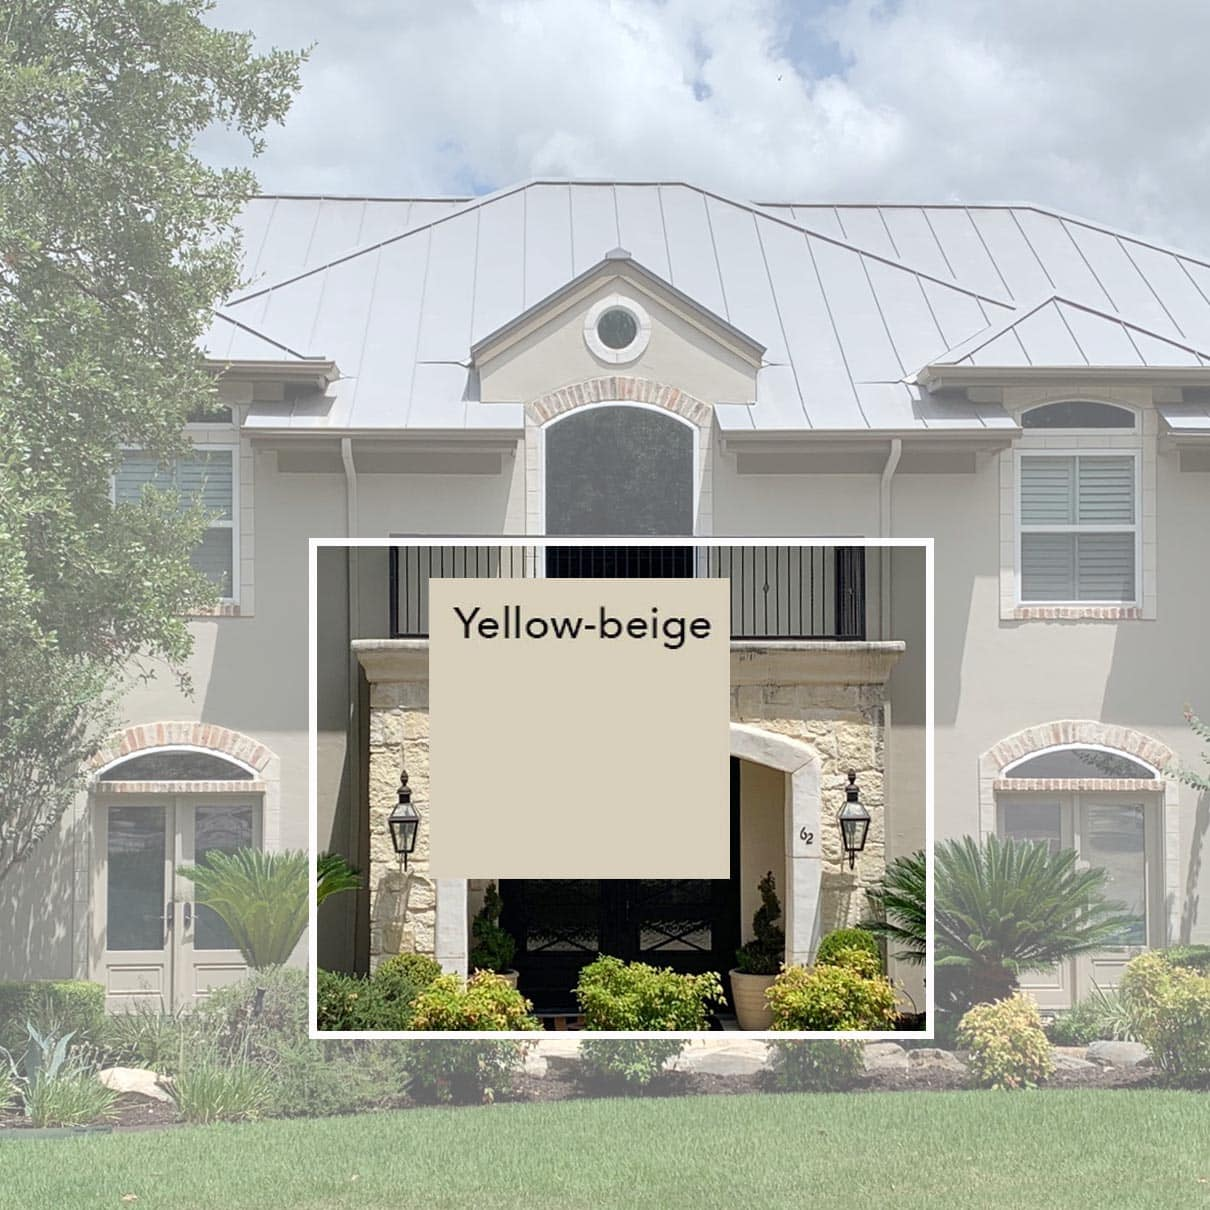 House exterior paint in HGSW3447 Sackcloth, Paper Moon Painting, yellow-beige on stone